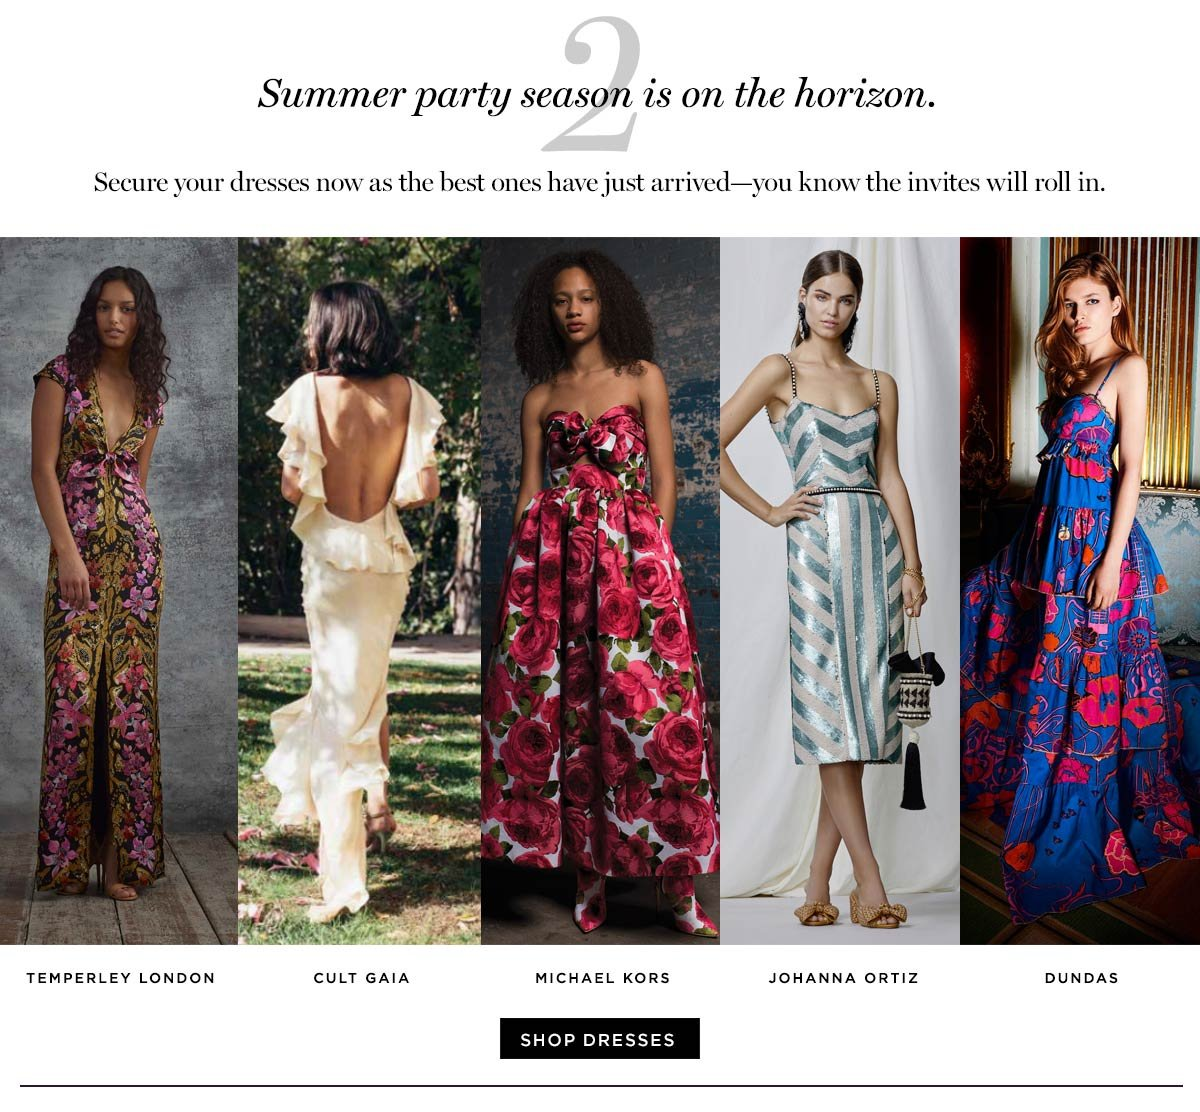 ff93a4c969bb9 The Digest, feat. swim & more for your summer debut - Moda Operandi ...